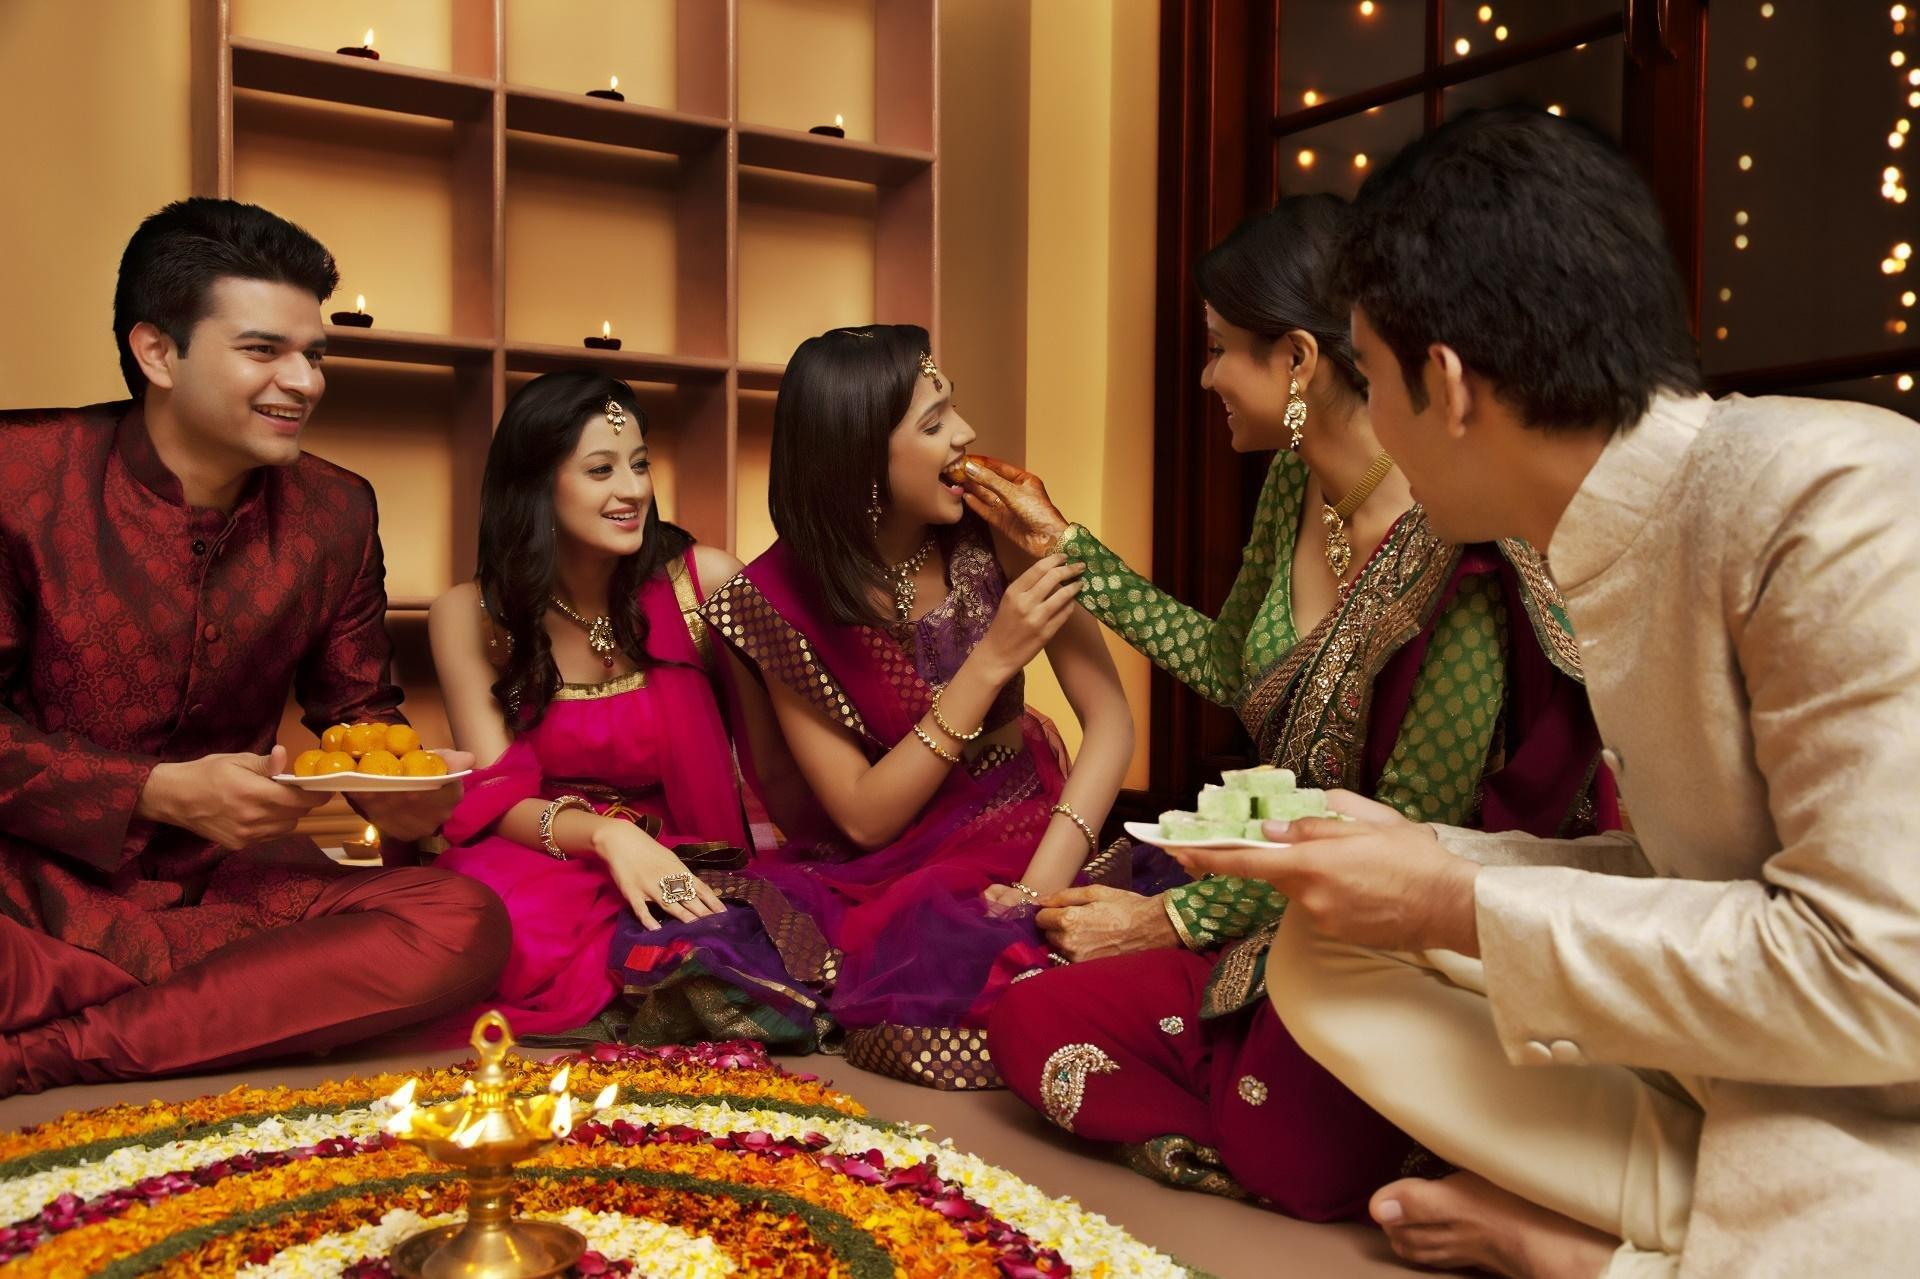 5 Indian Sweet Dishes Diabetics Can Eat Guilt-free This Diwali